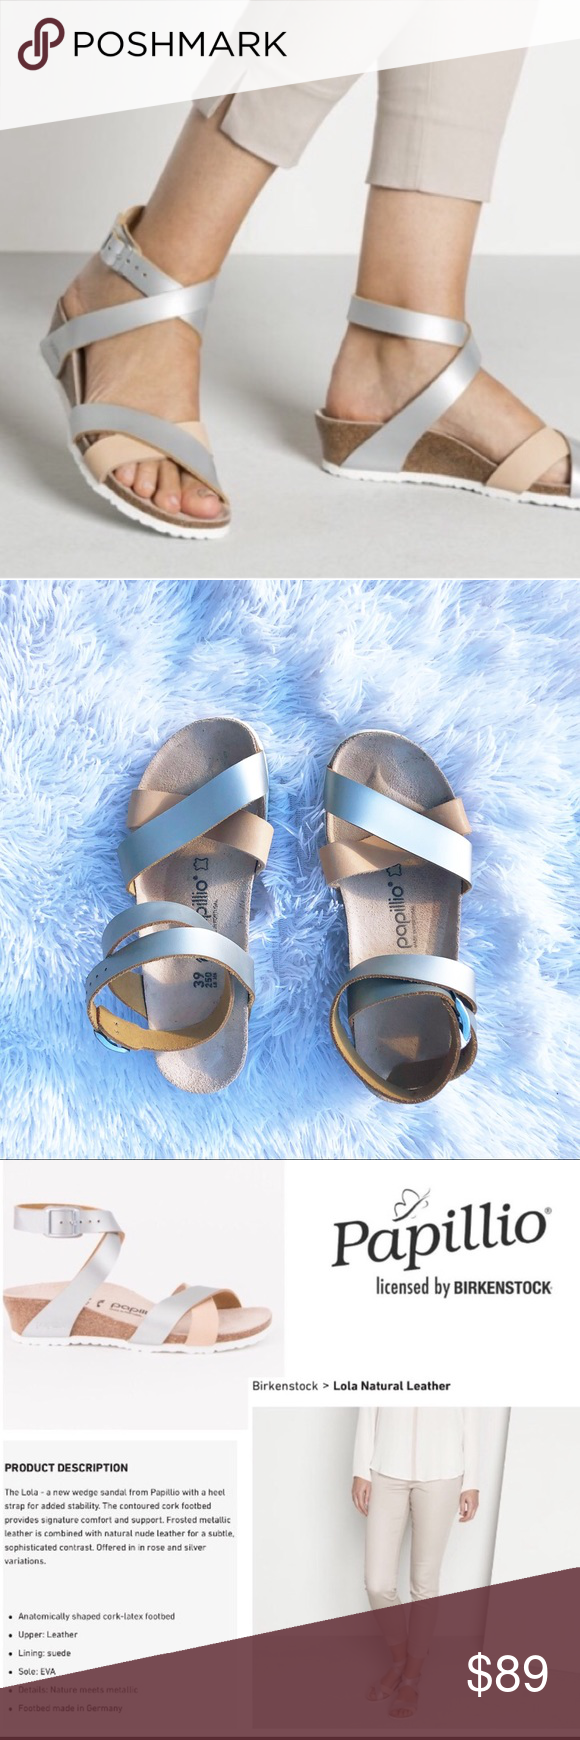 a57e6fe5a Birkenstock Papillio Lola Leather Ankle Strap 39 Add a little charm to your  look wearing the